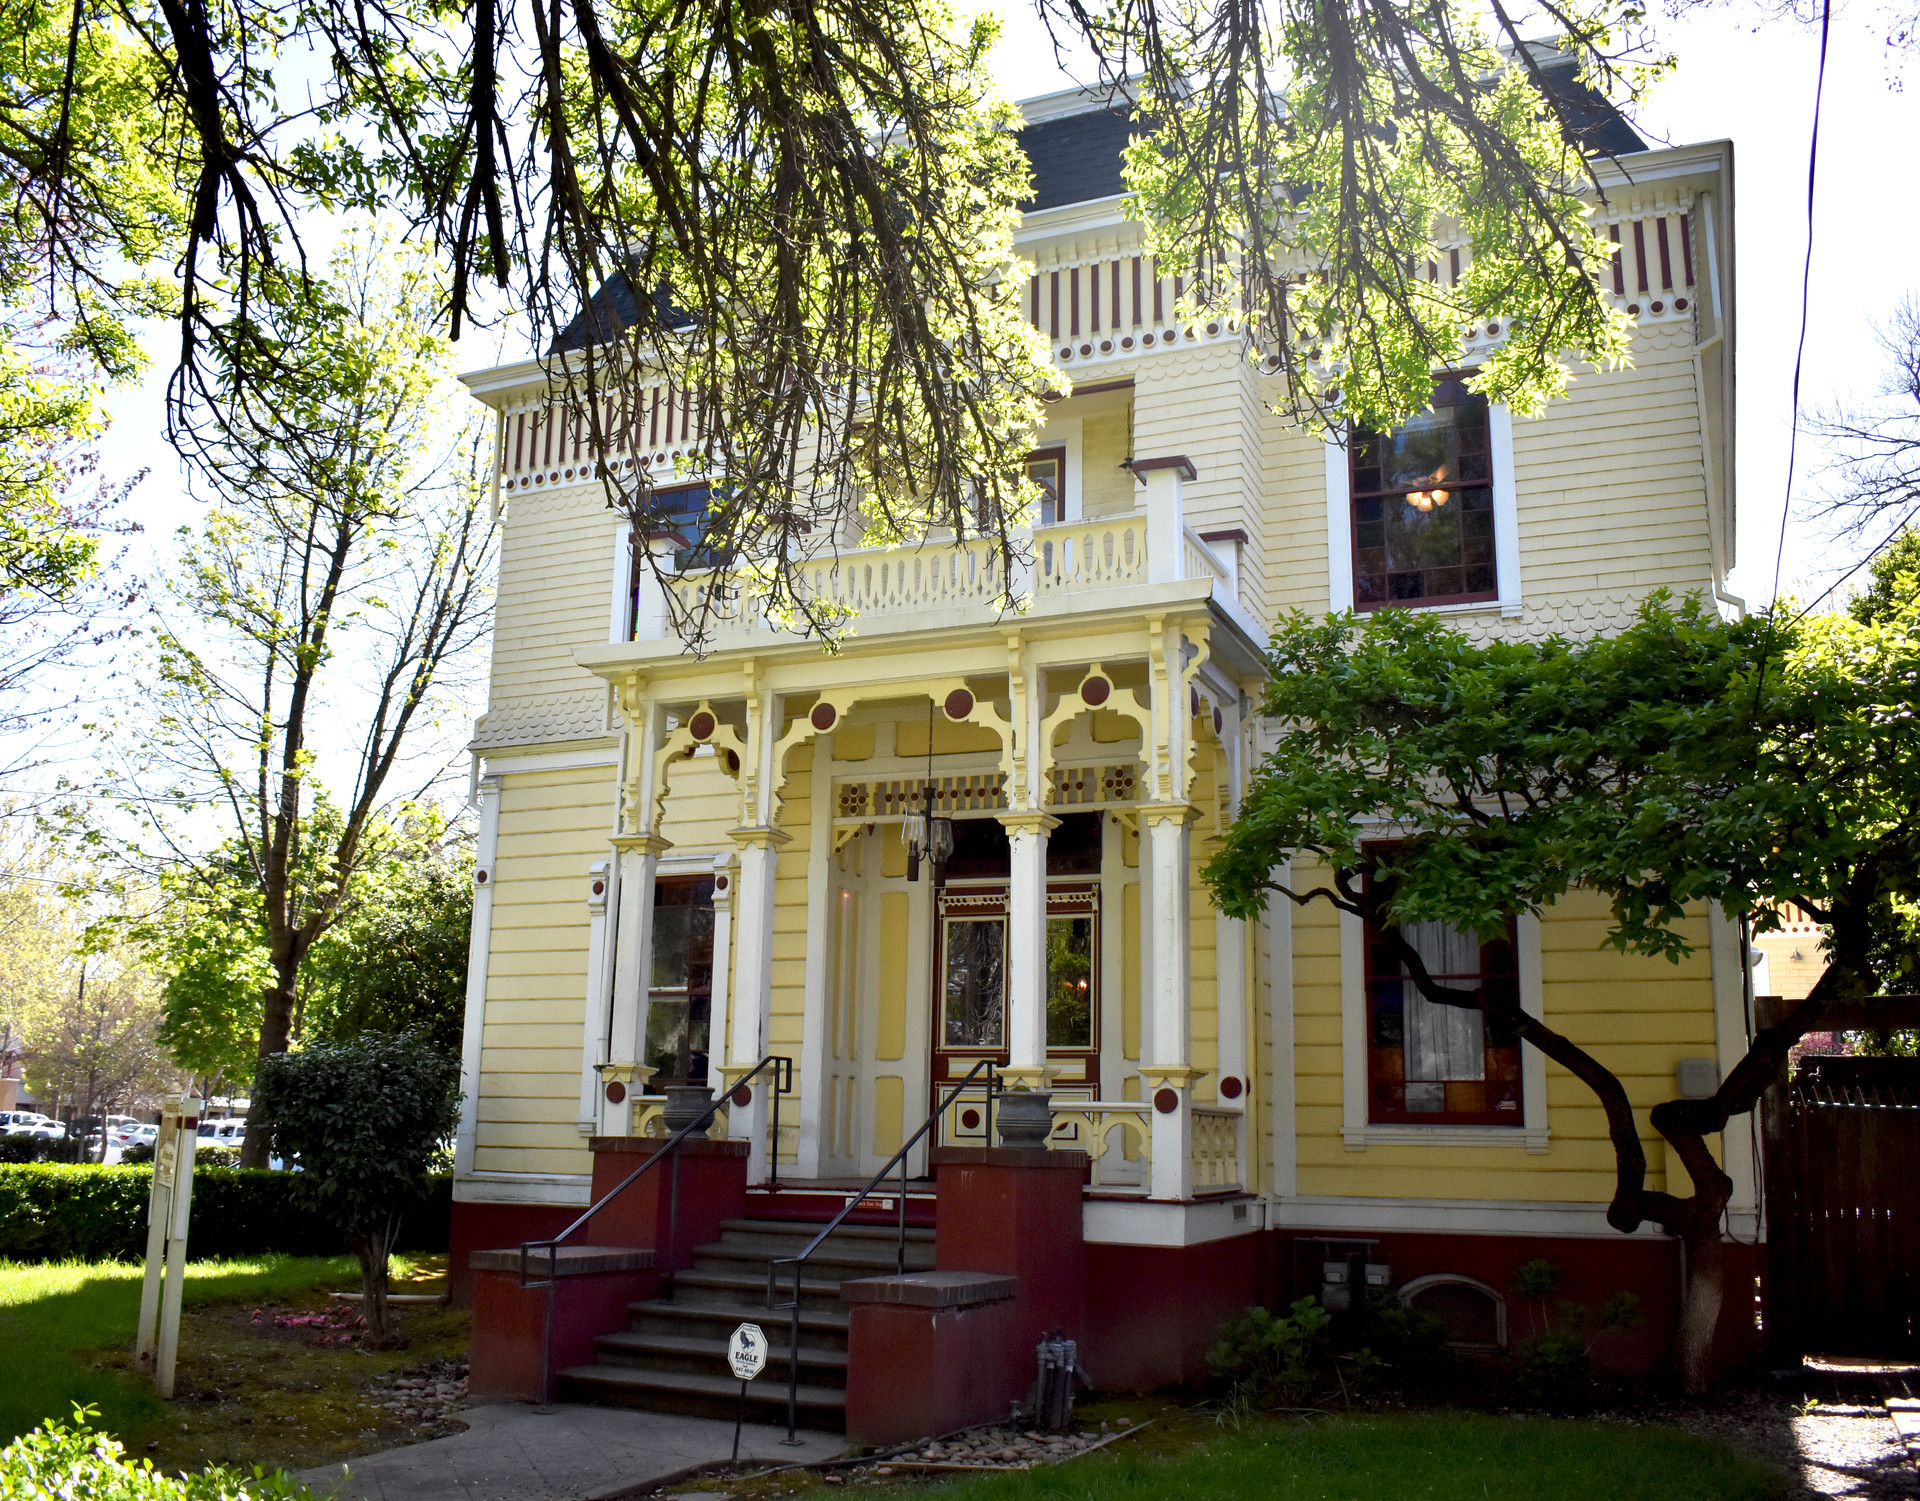 The Lee-Mansfield House dates to the Victorian era